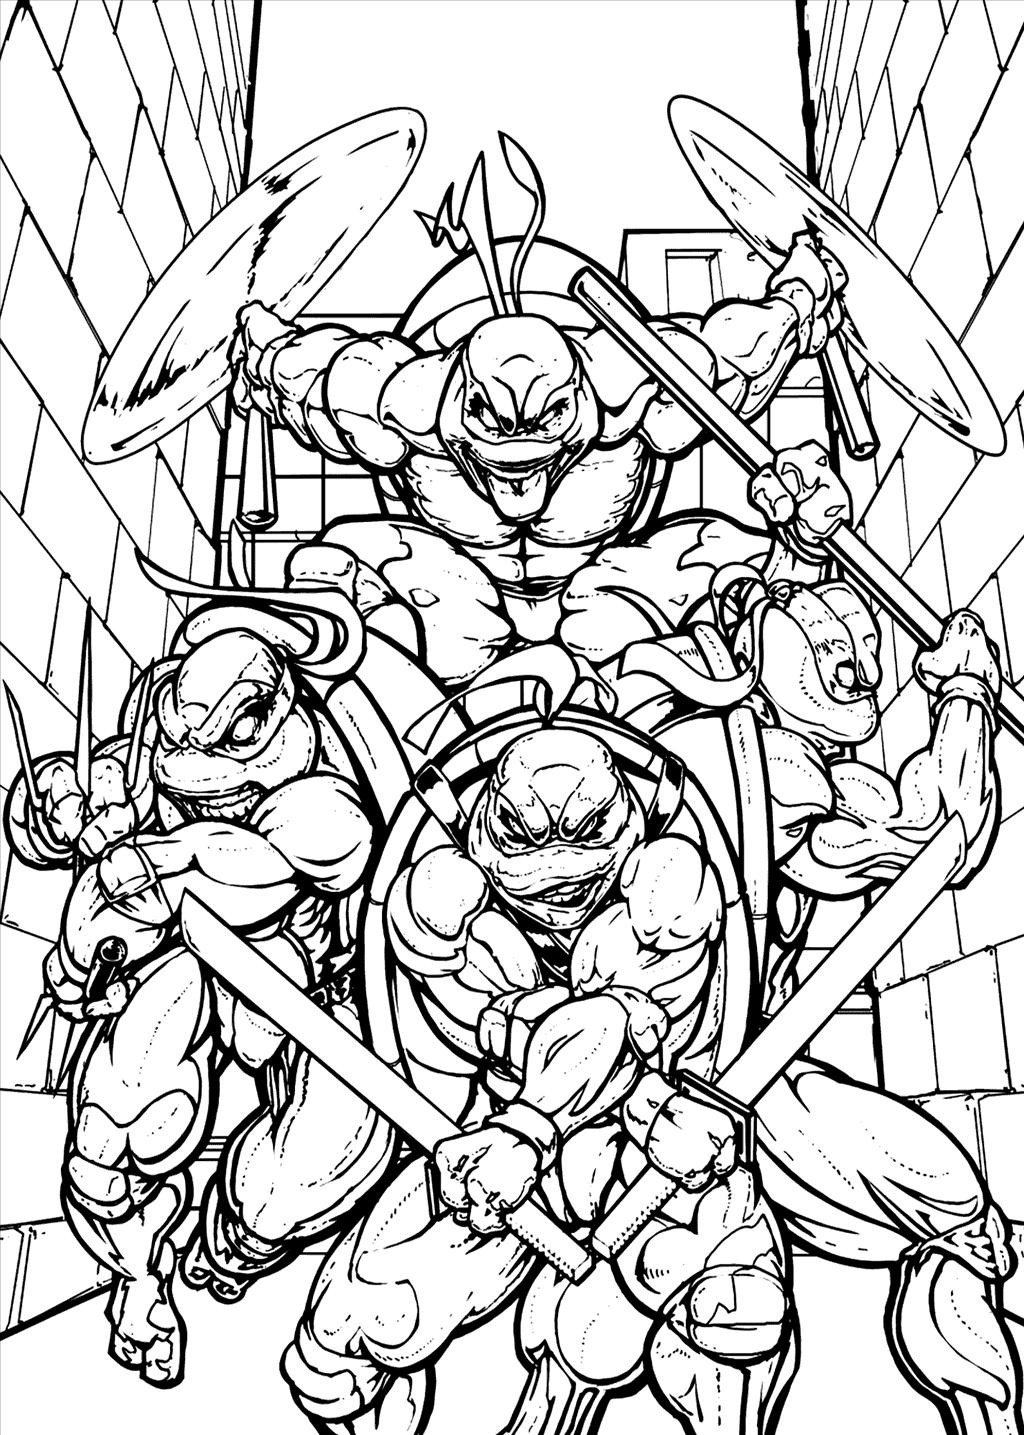 Teenage Ninja Turtle Coloring Pages Download | Free Coloring Sheets